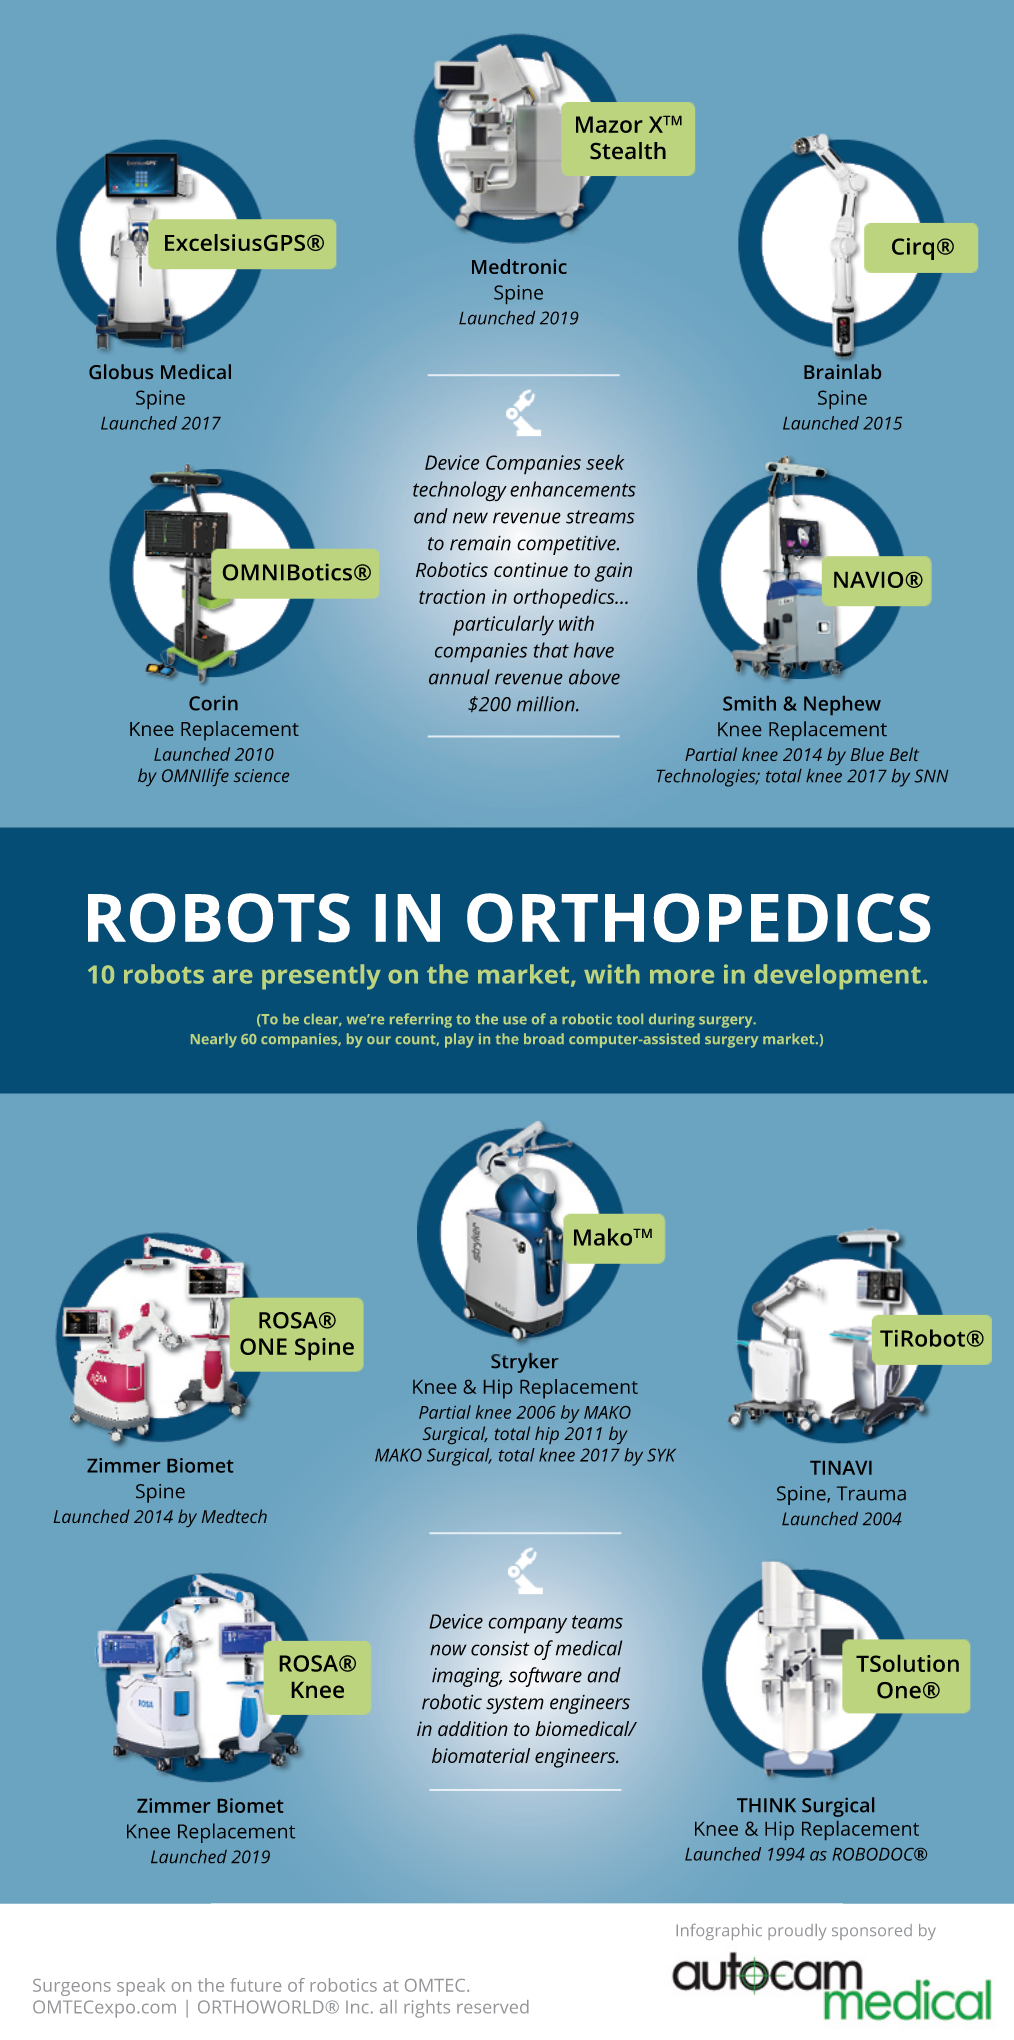 10 Robots in Orthopedic Surgery today – InfoGraphic